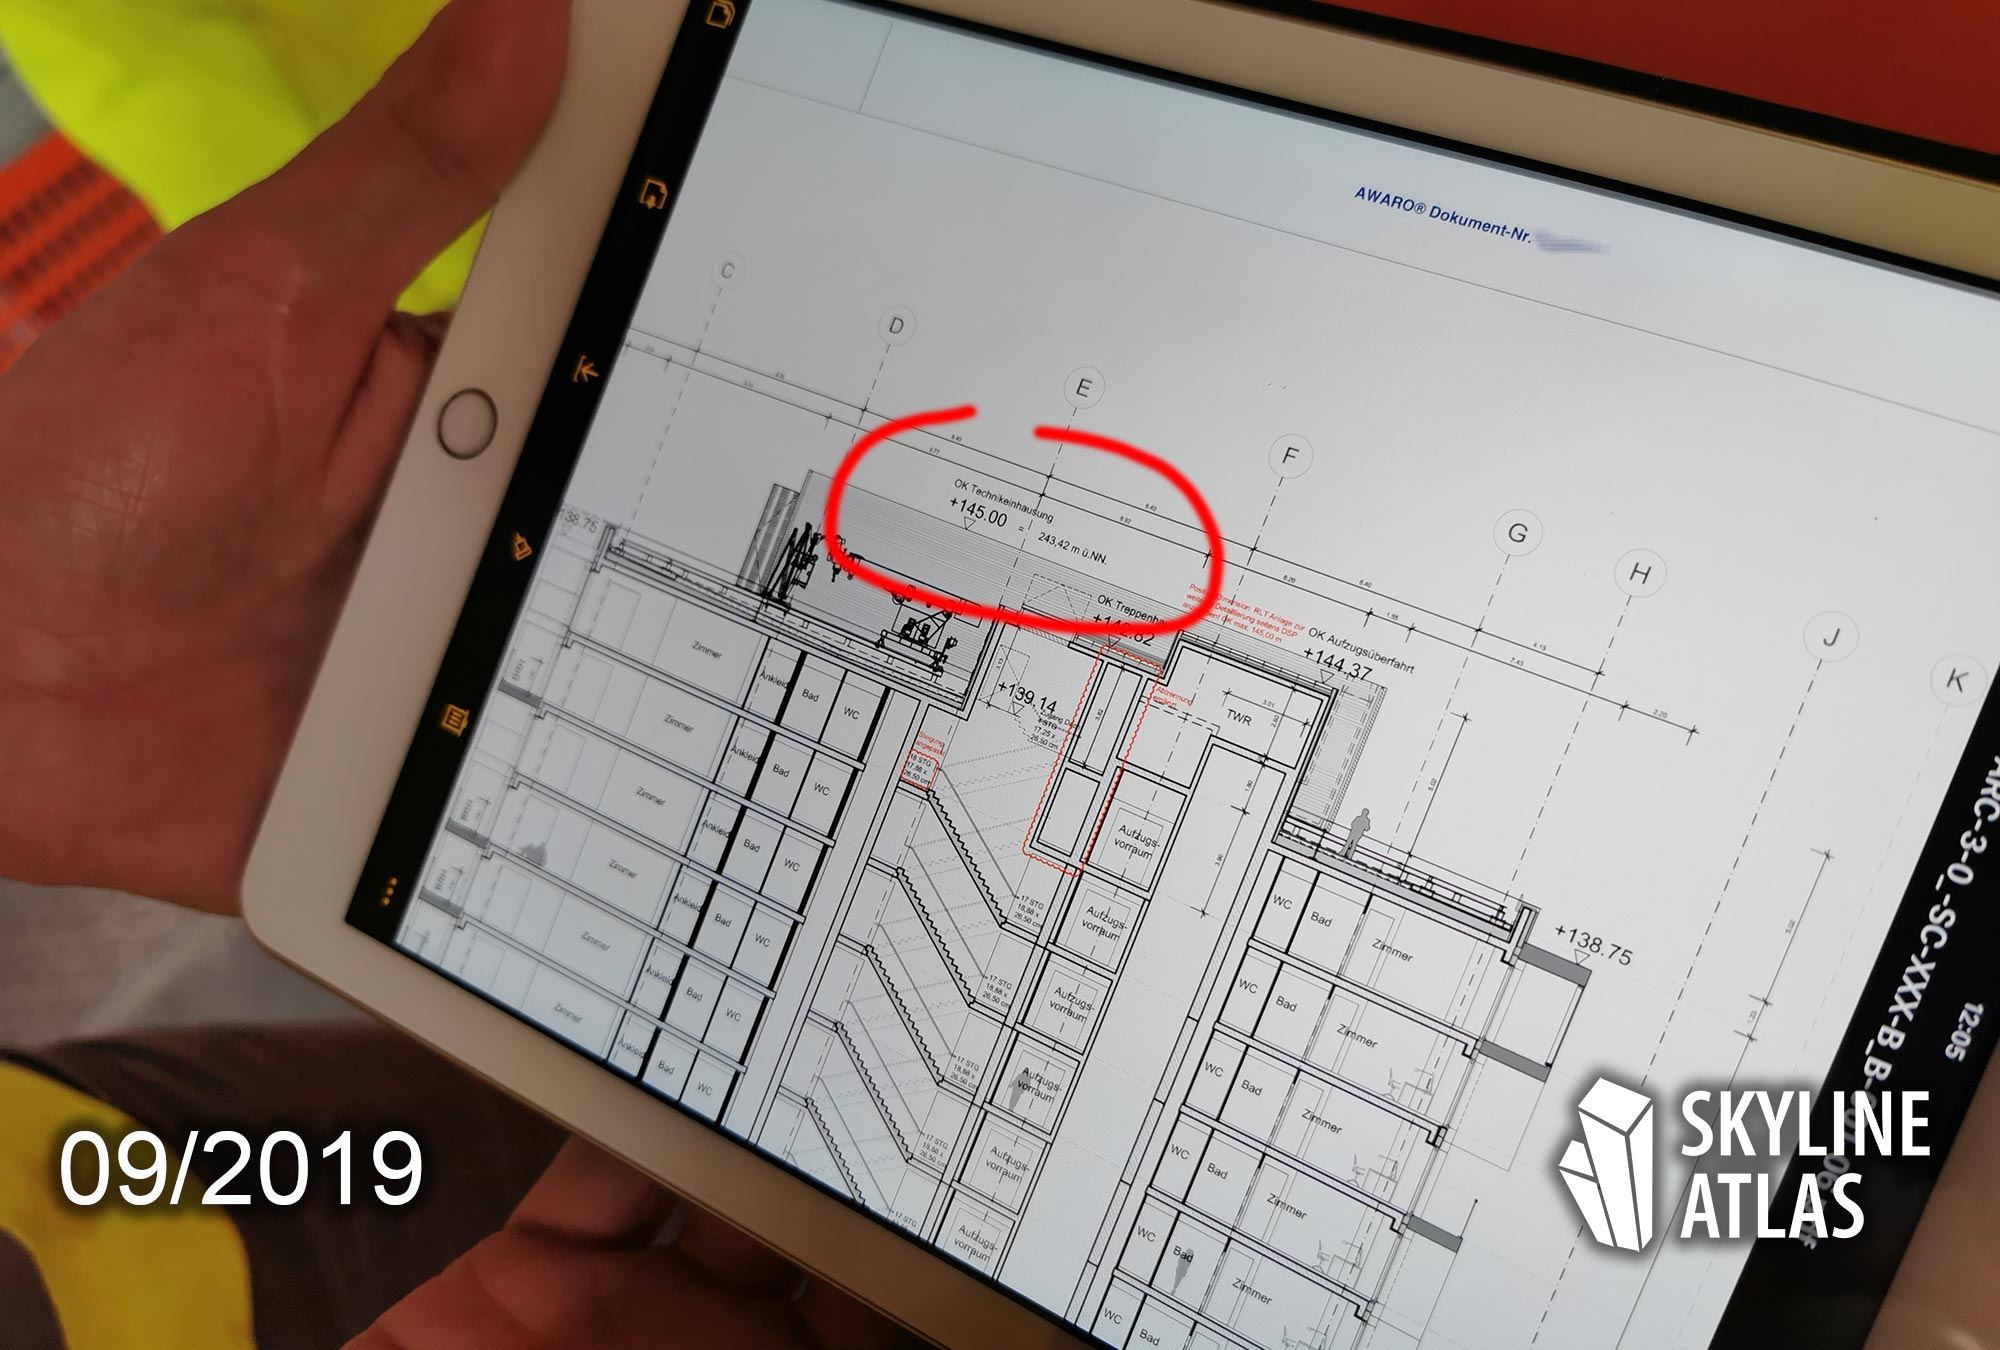 ONE FORTY WEST - official height - building height - iPad - plan - sketch- detail